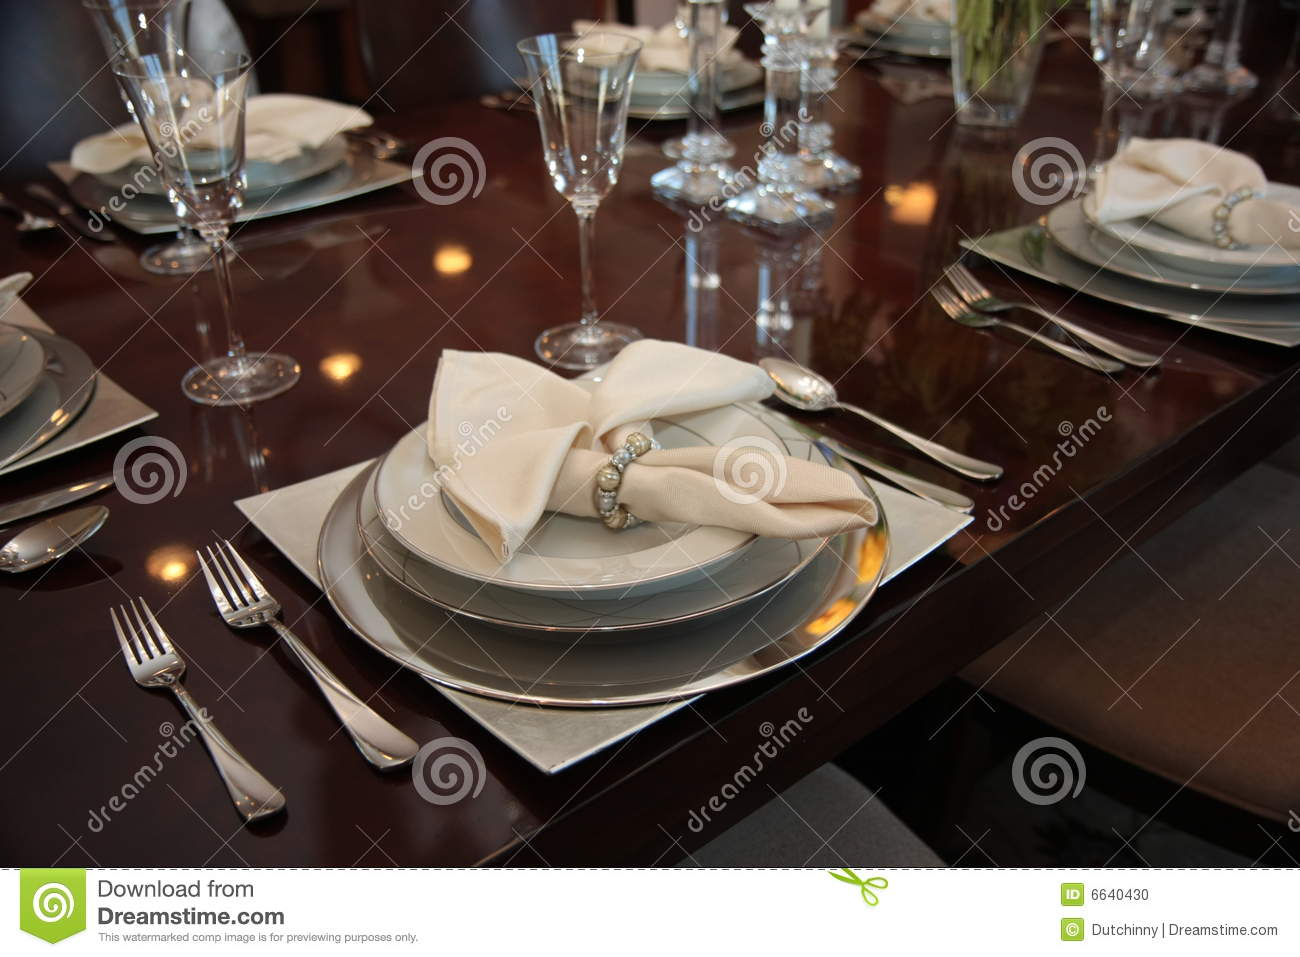 Formal dinner place settings & Formal Dinner Place Settings Stock Photo - Image of lavish ...